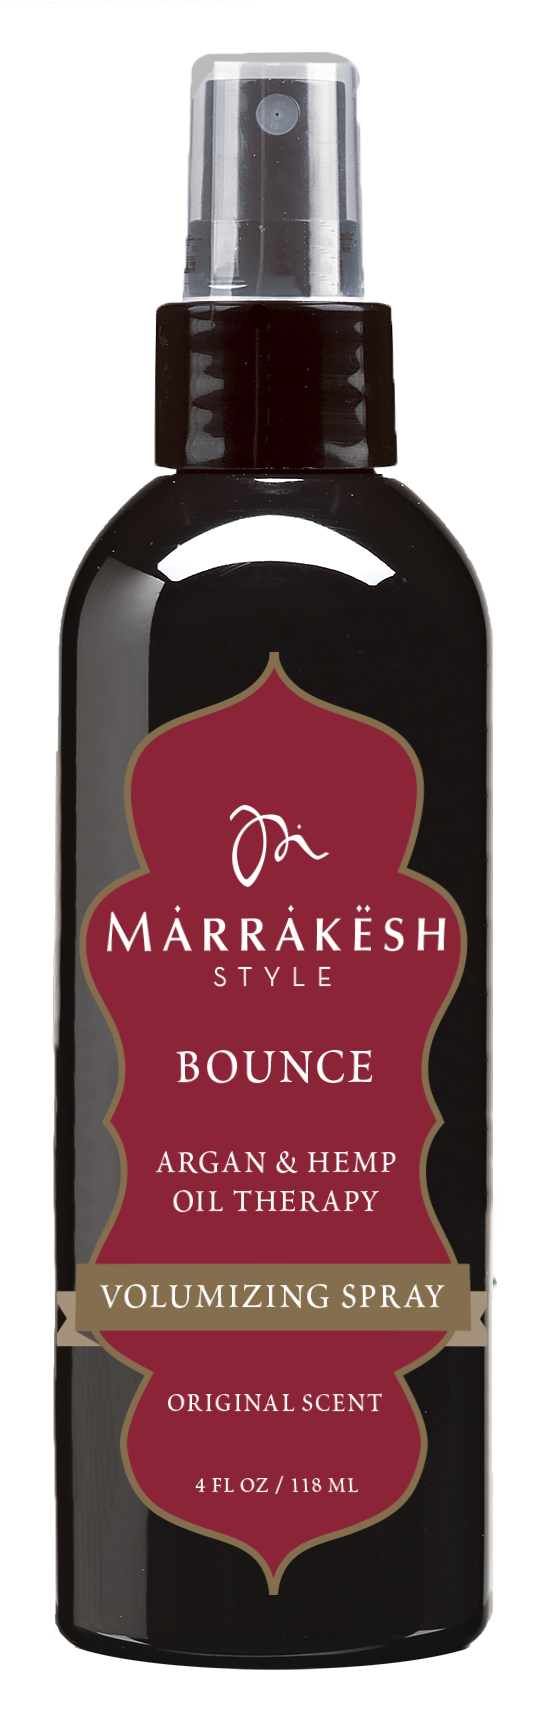 MARRAKESH ����� ��� �����, ��������� ����� /Marrakesh Styling Volumizing Spray 118 ��